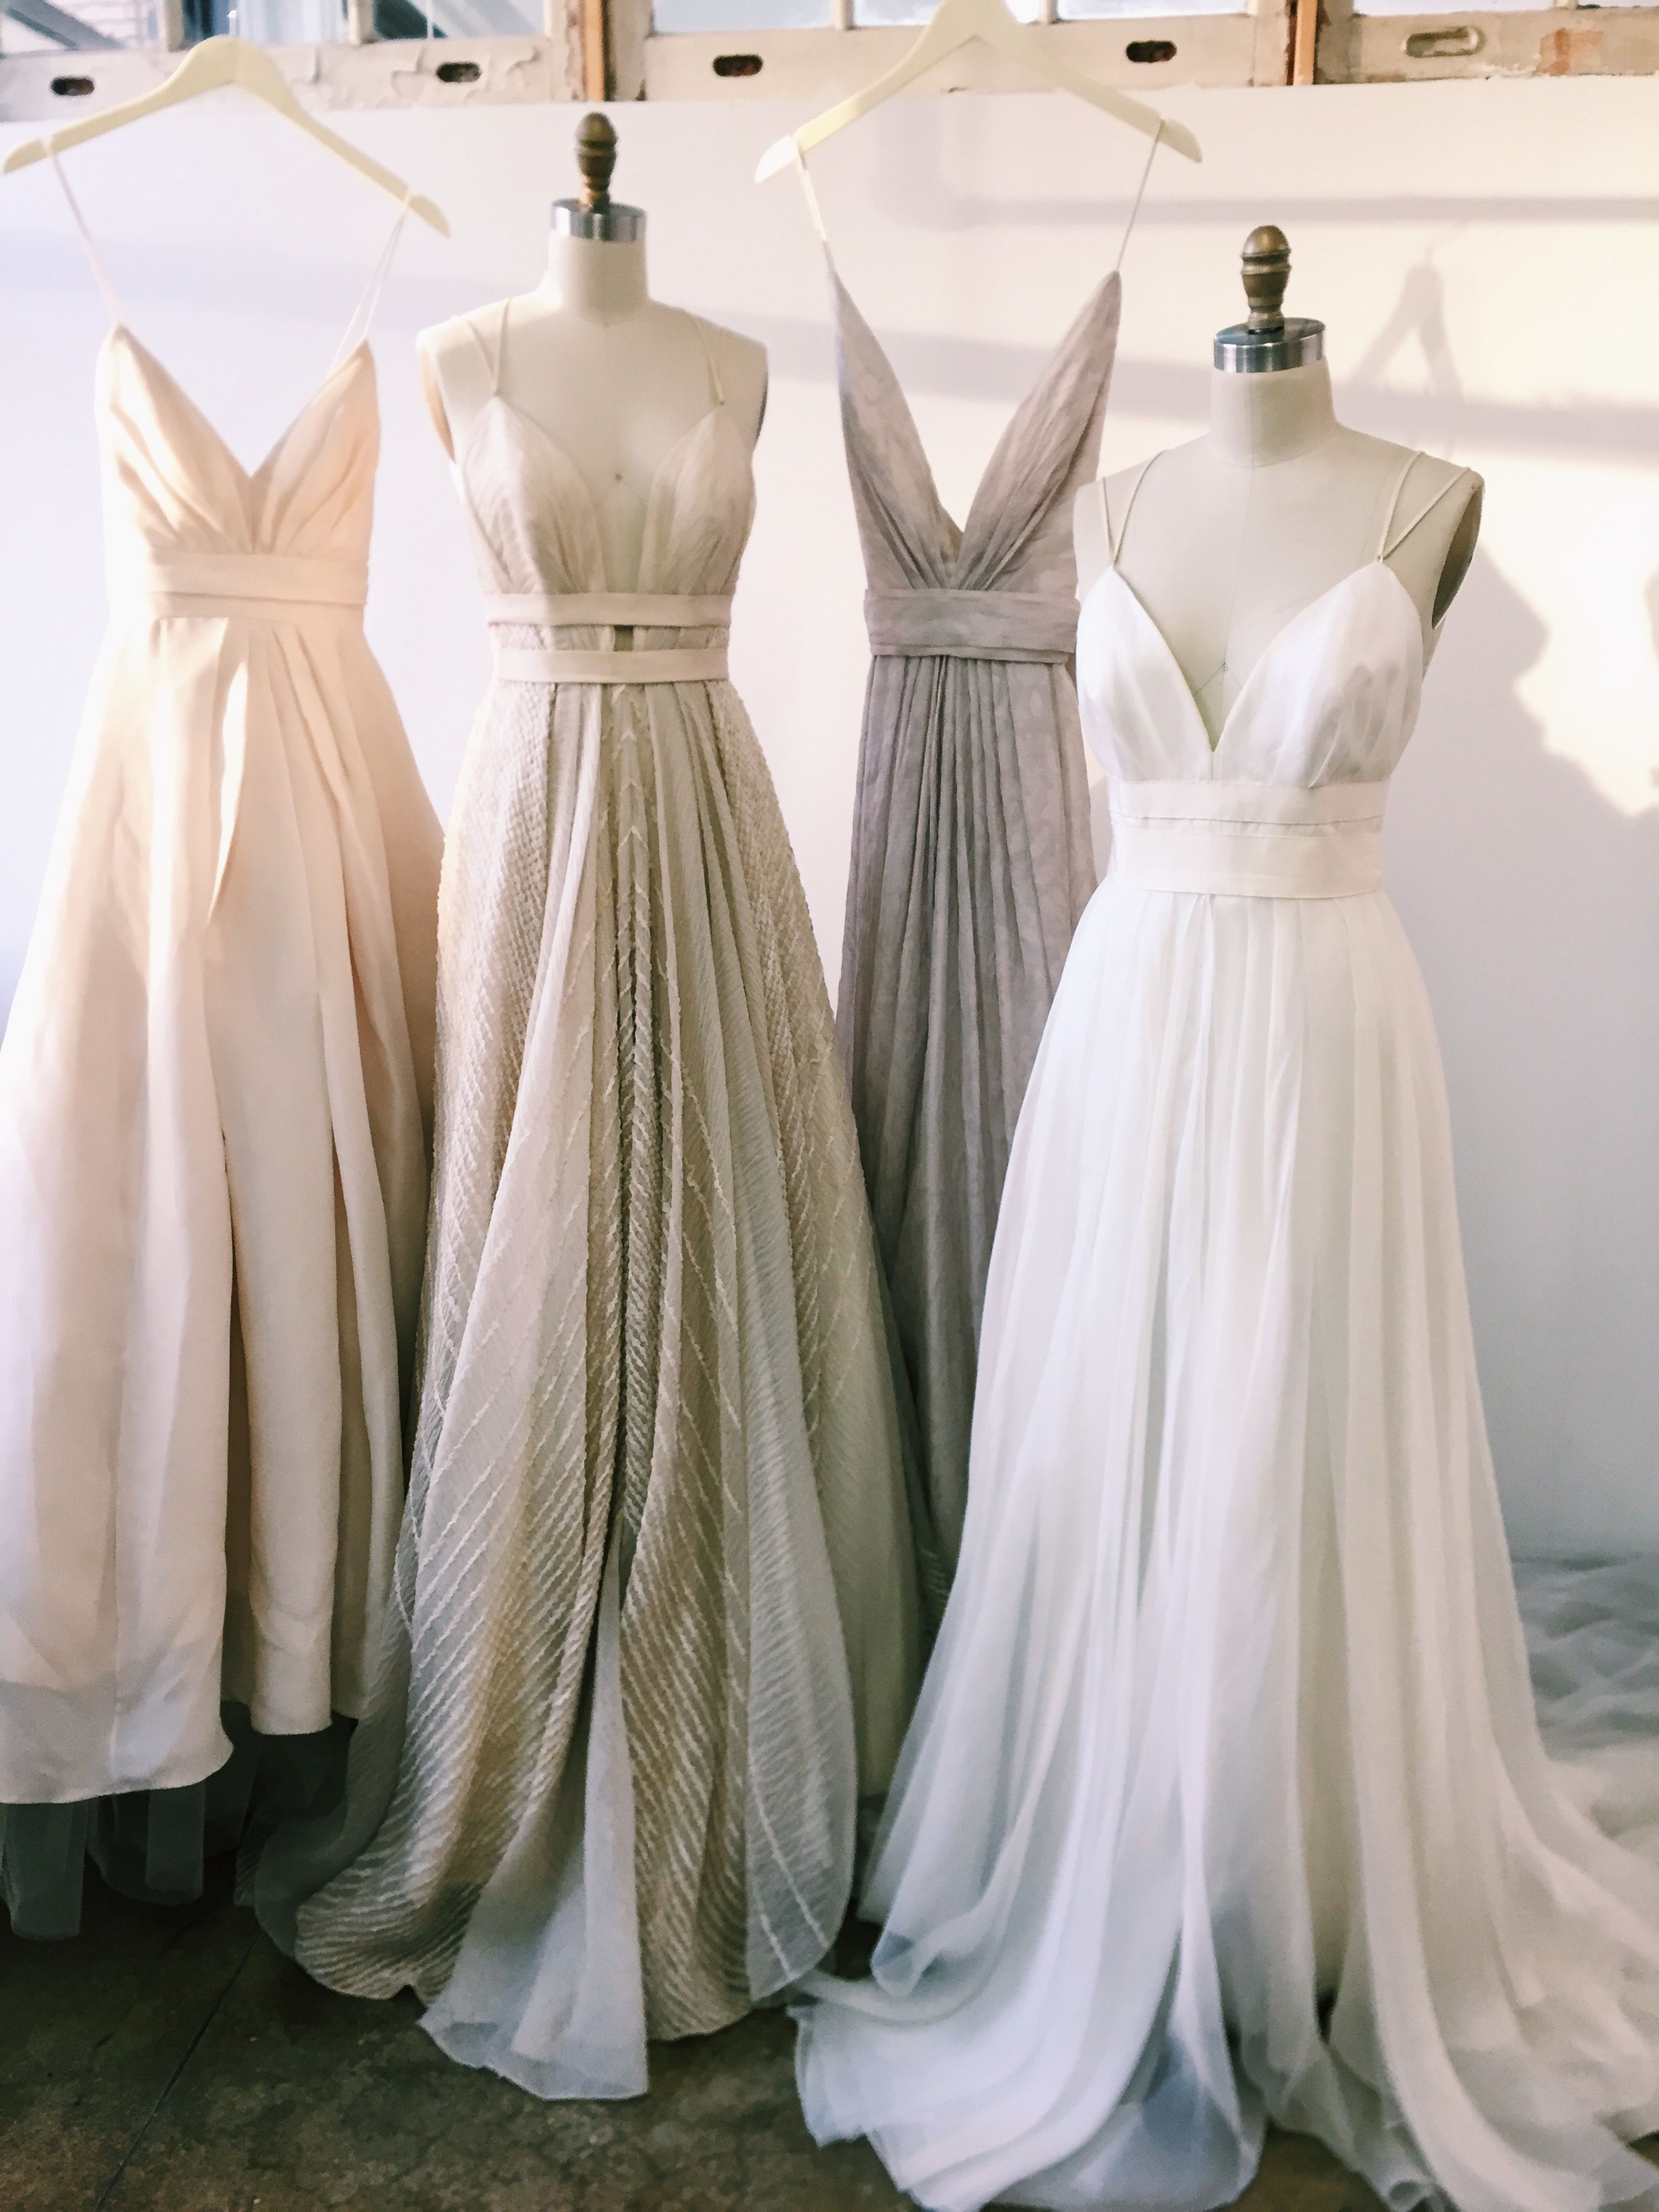 Ryleeaira casamento pinterest low cut dresses bodice and